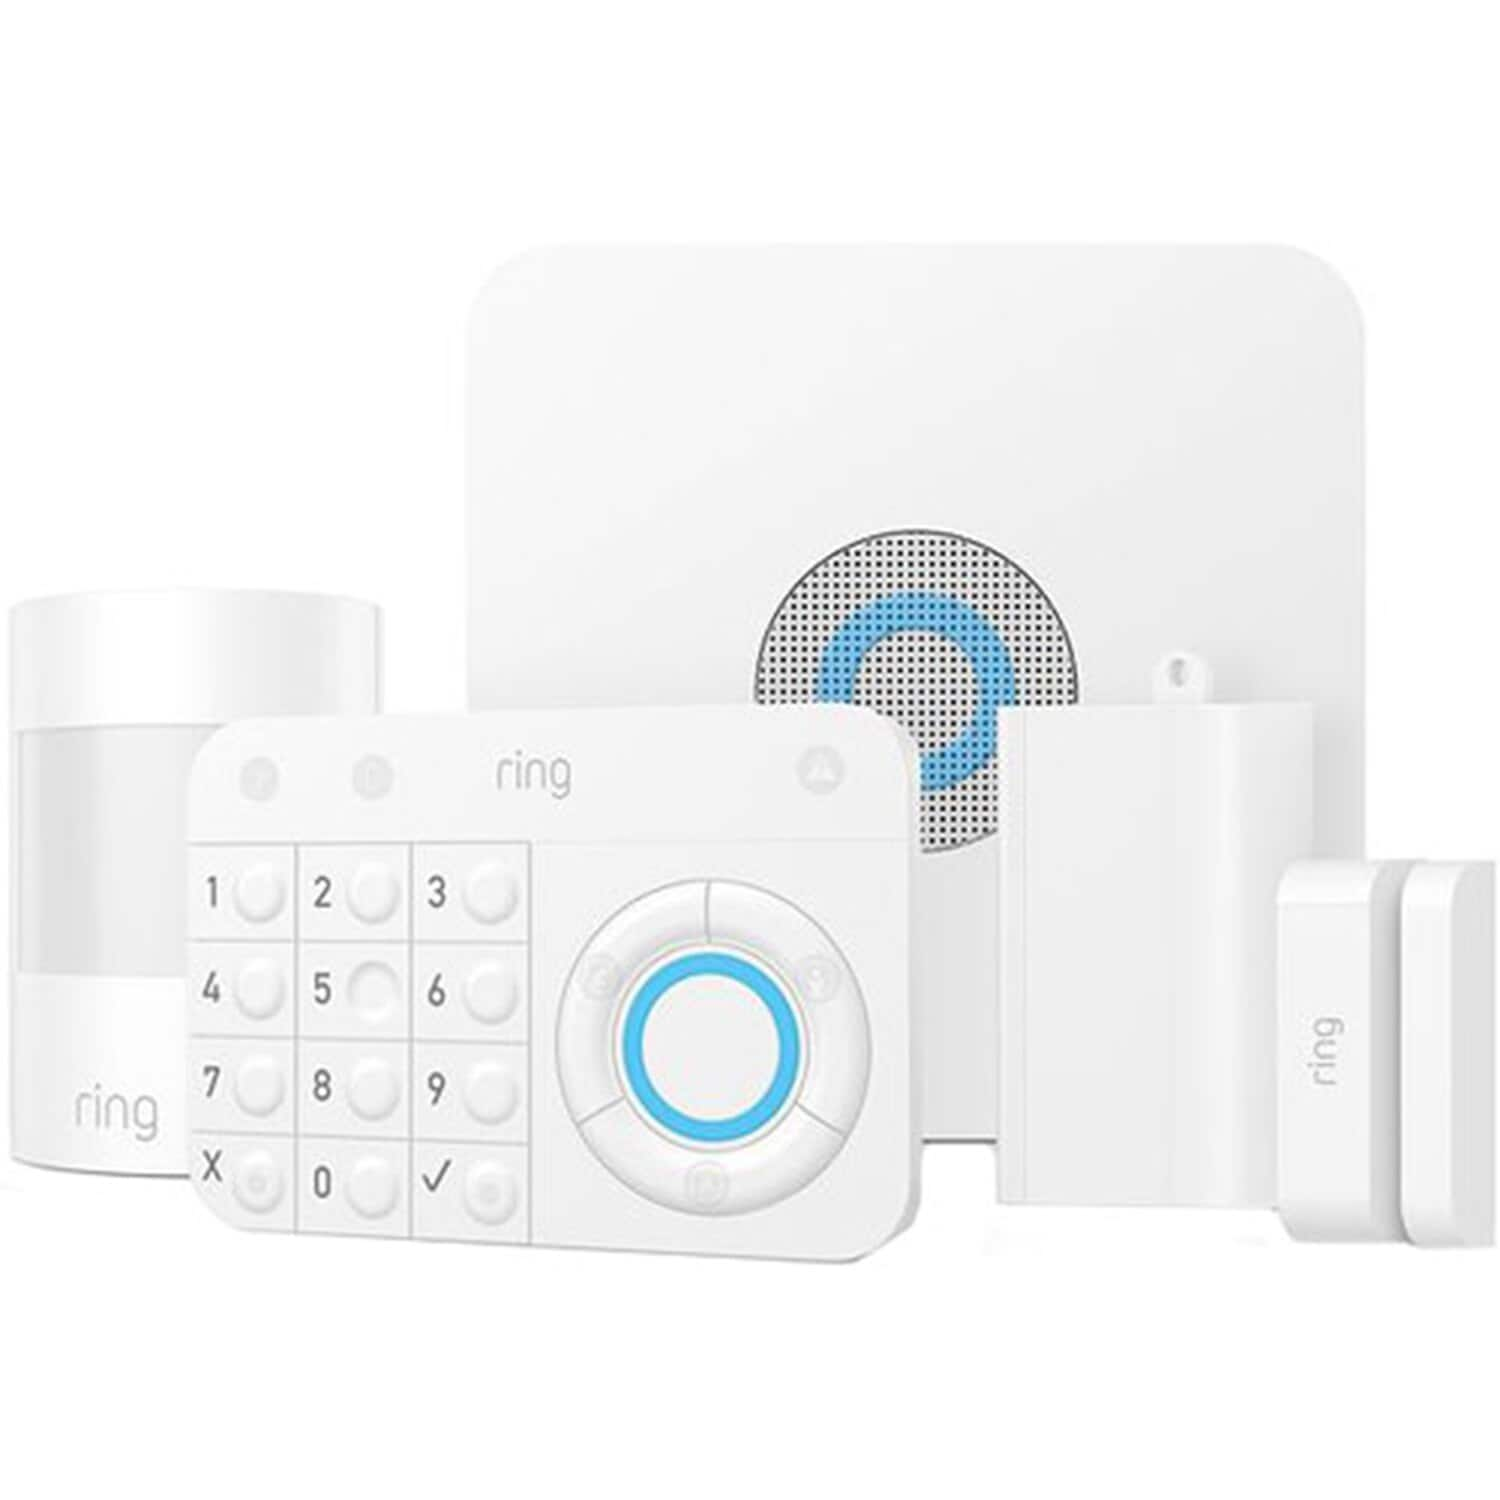 Ring Spotlight Cam Battery Wire Free HD Security Camera - $109.95 & Ring Alarm 5 Piece System -$94.99 + FS